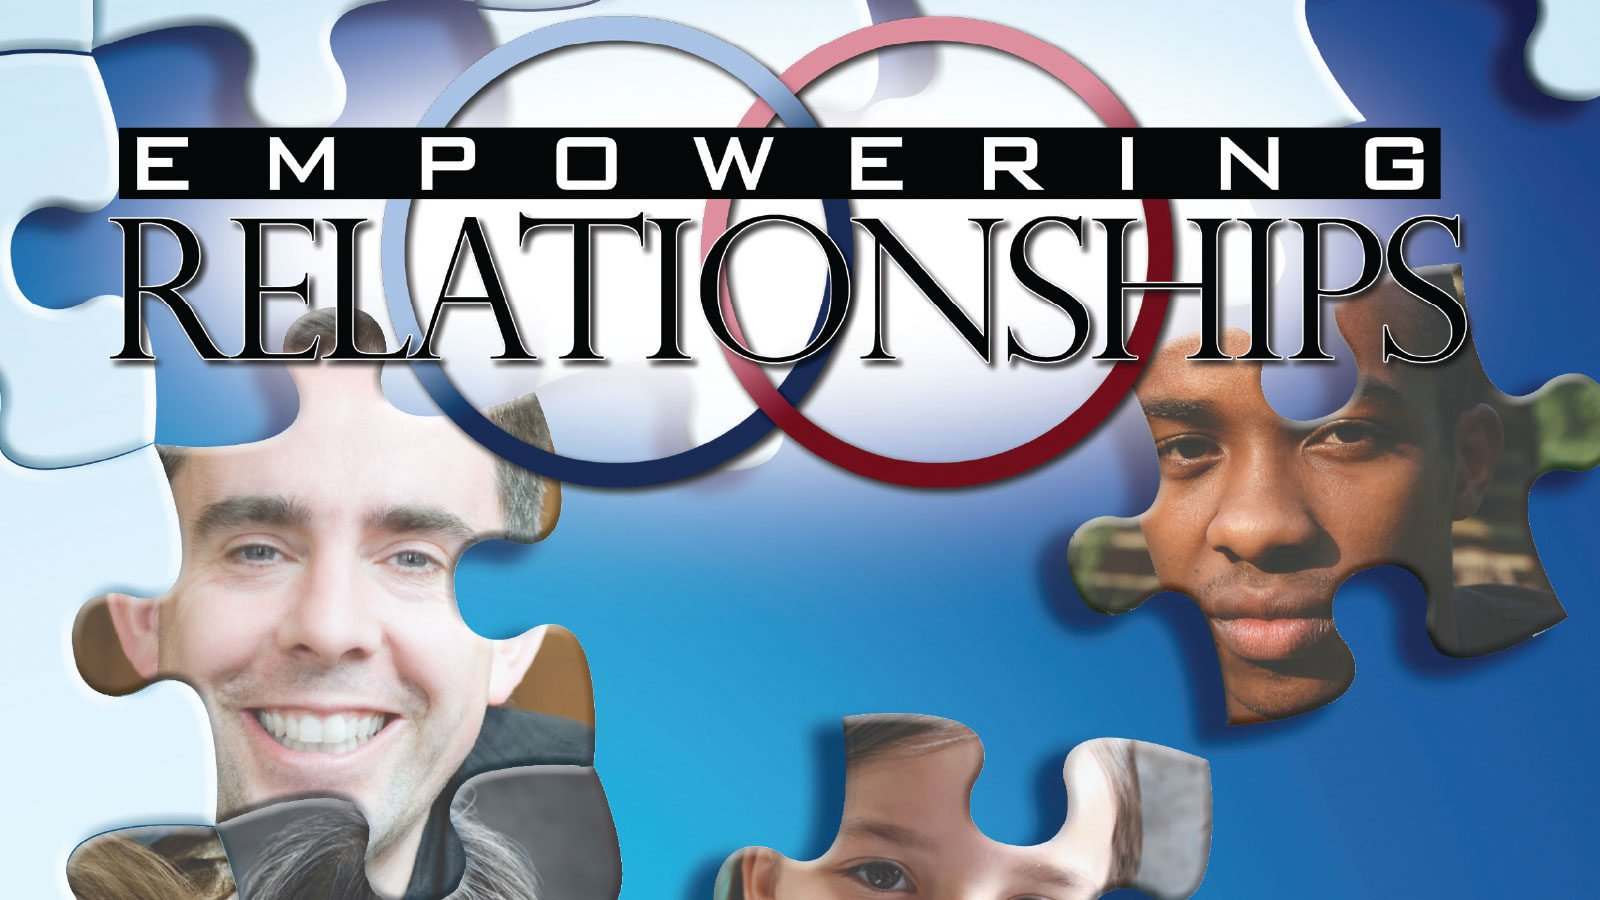 empowering-relationships-featured